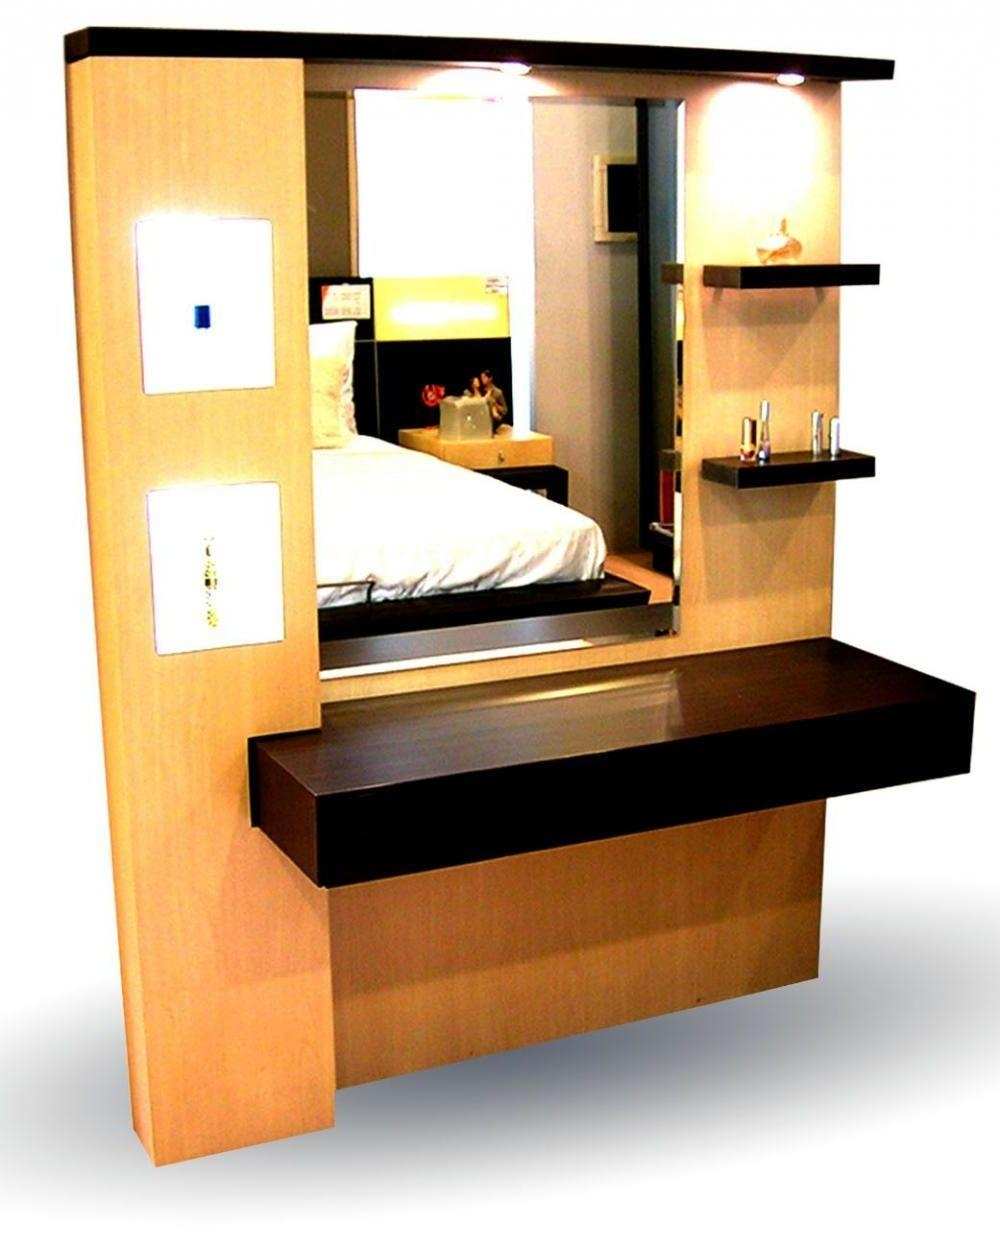 Bedroom Dressing Table Designs With Full Length Mirror For Girls Throughout Dressing Table With Long Mirror (Image 4 of 20)